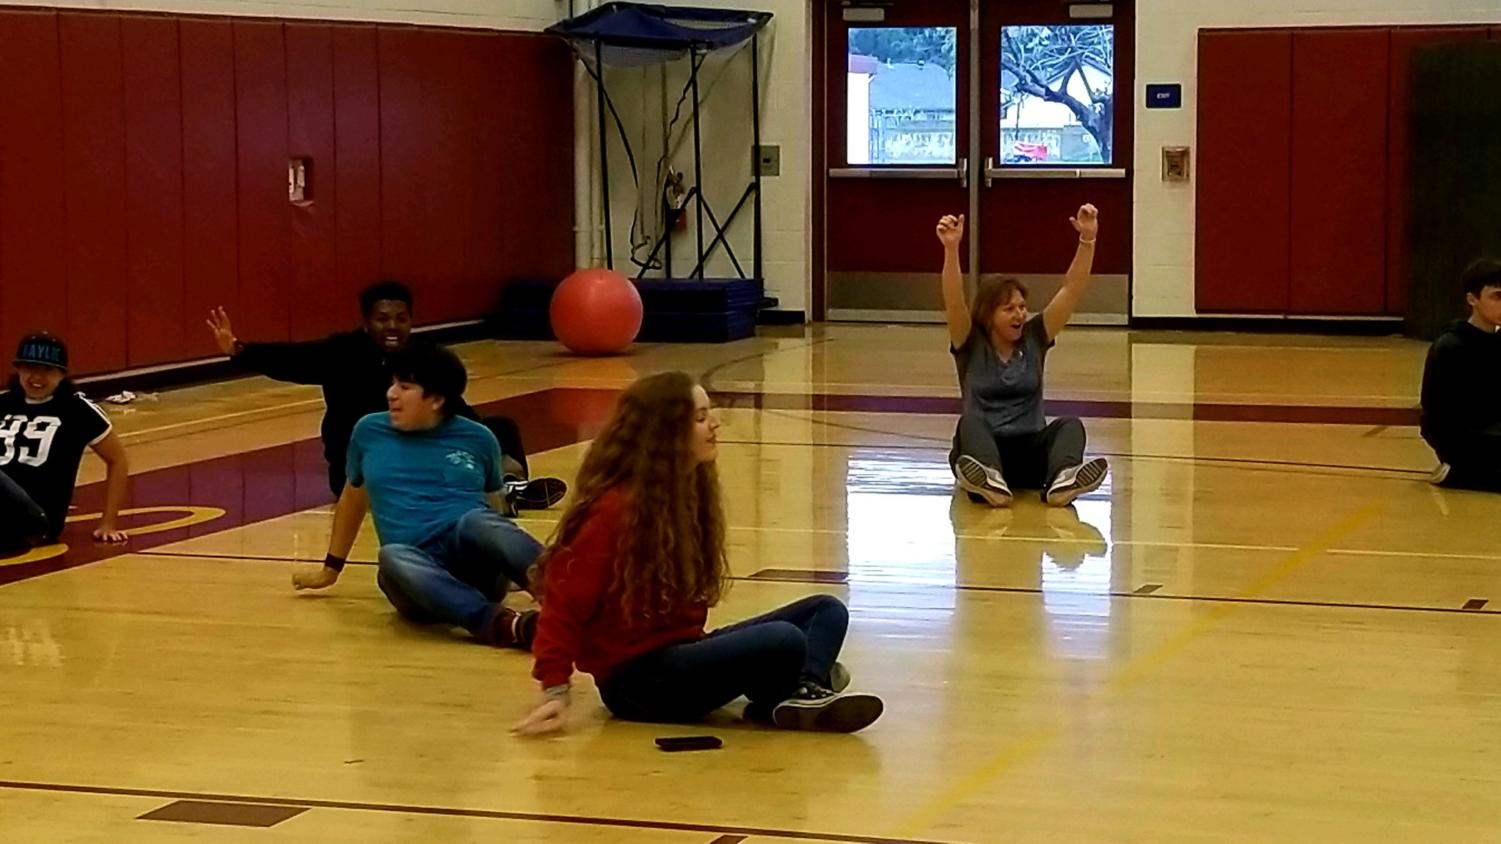 Rachel Williams and Ms.Walters having a great time celebrating a goal during a friendly game of crab soccer with Kaylie Meredith, Xavier Thomas, and Scott Conte.